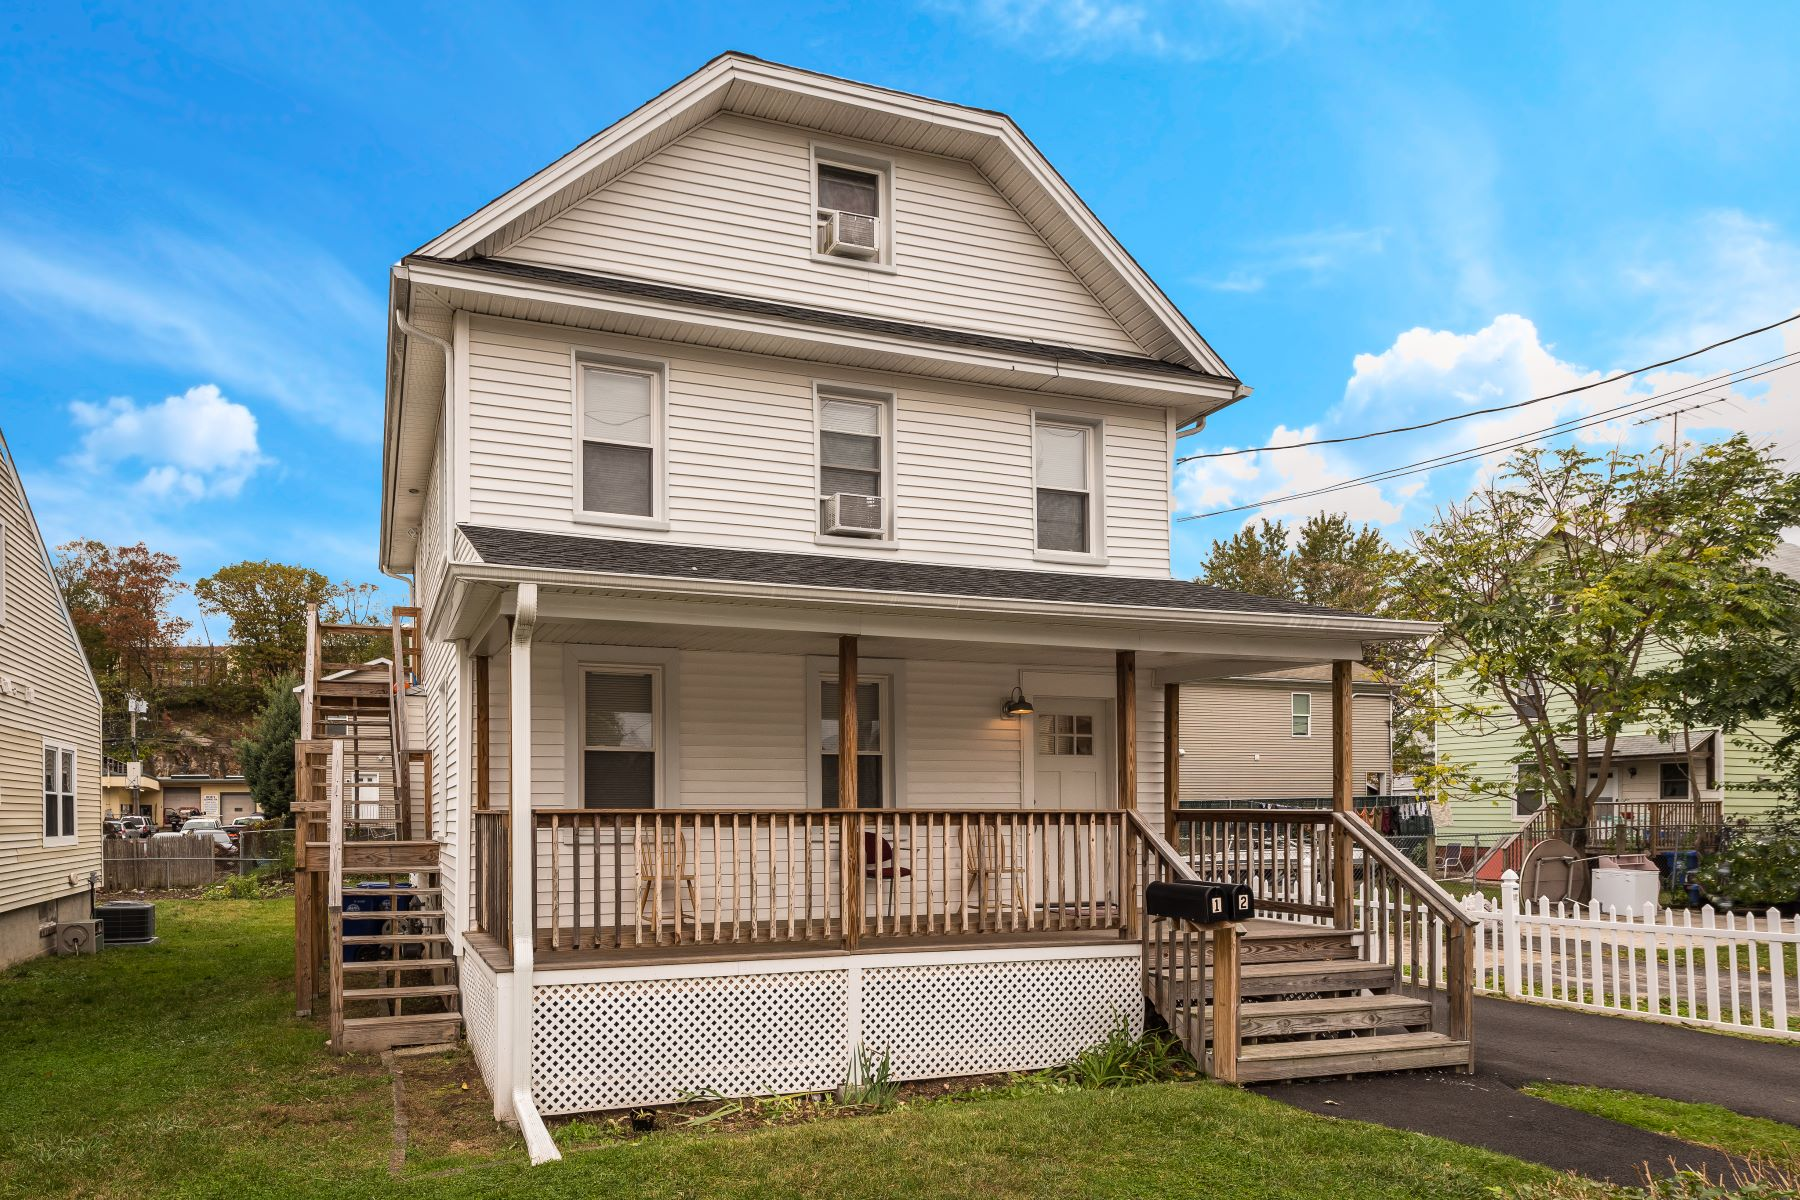 Single Family Home for Sale at SONO Two Family House 1 Lincoln Avenue, Norwalk, Connecticut, 06854 United States